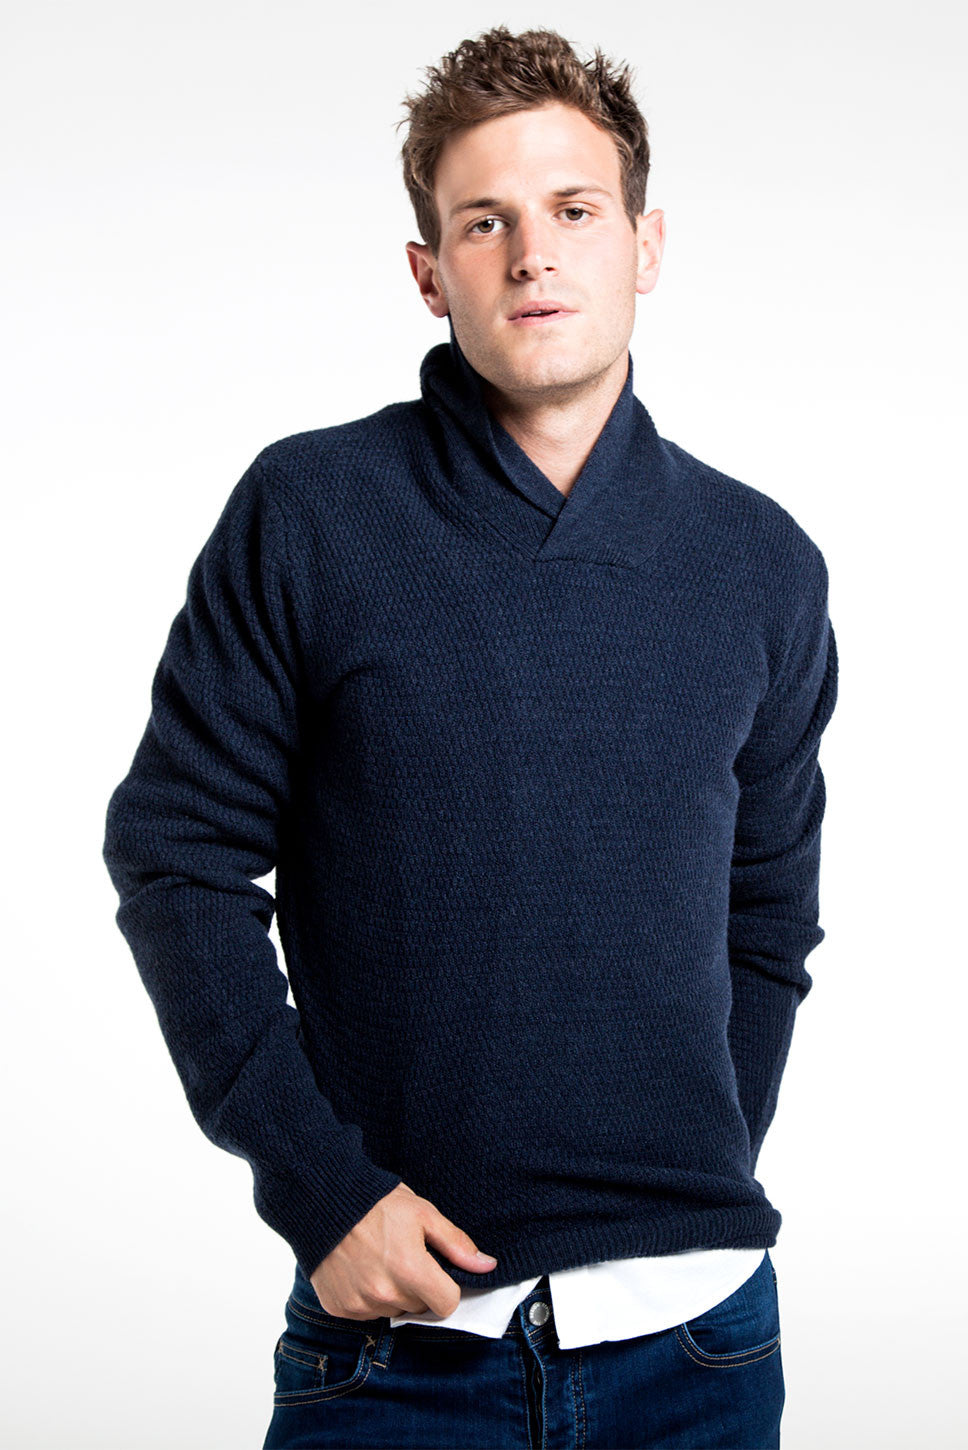 The Shawl Collar Knit